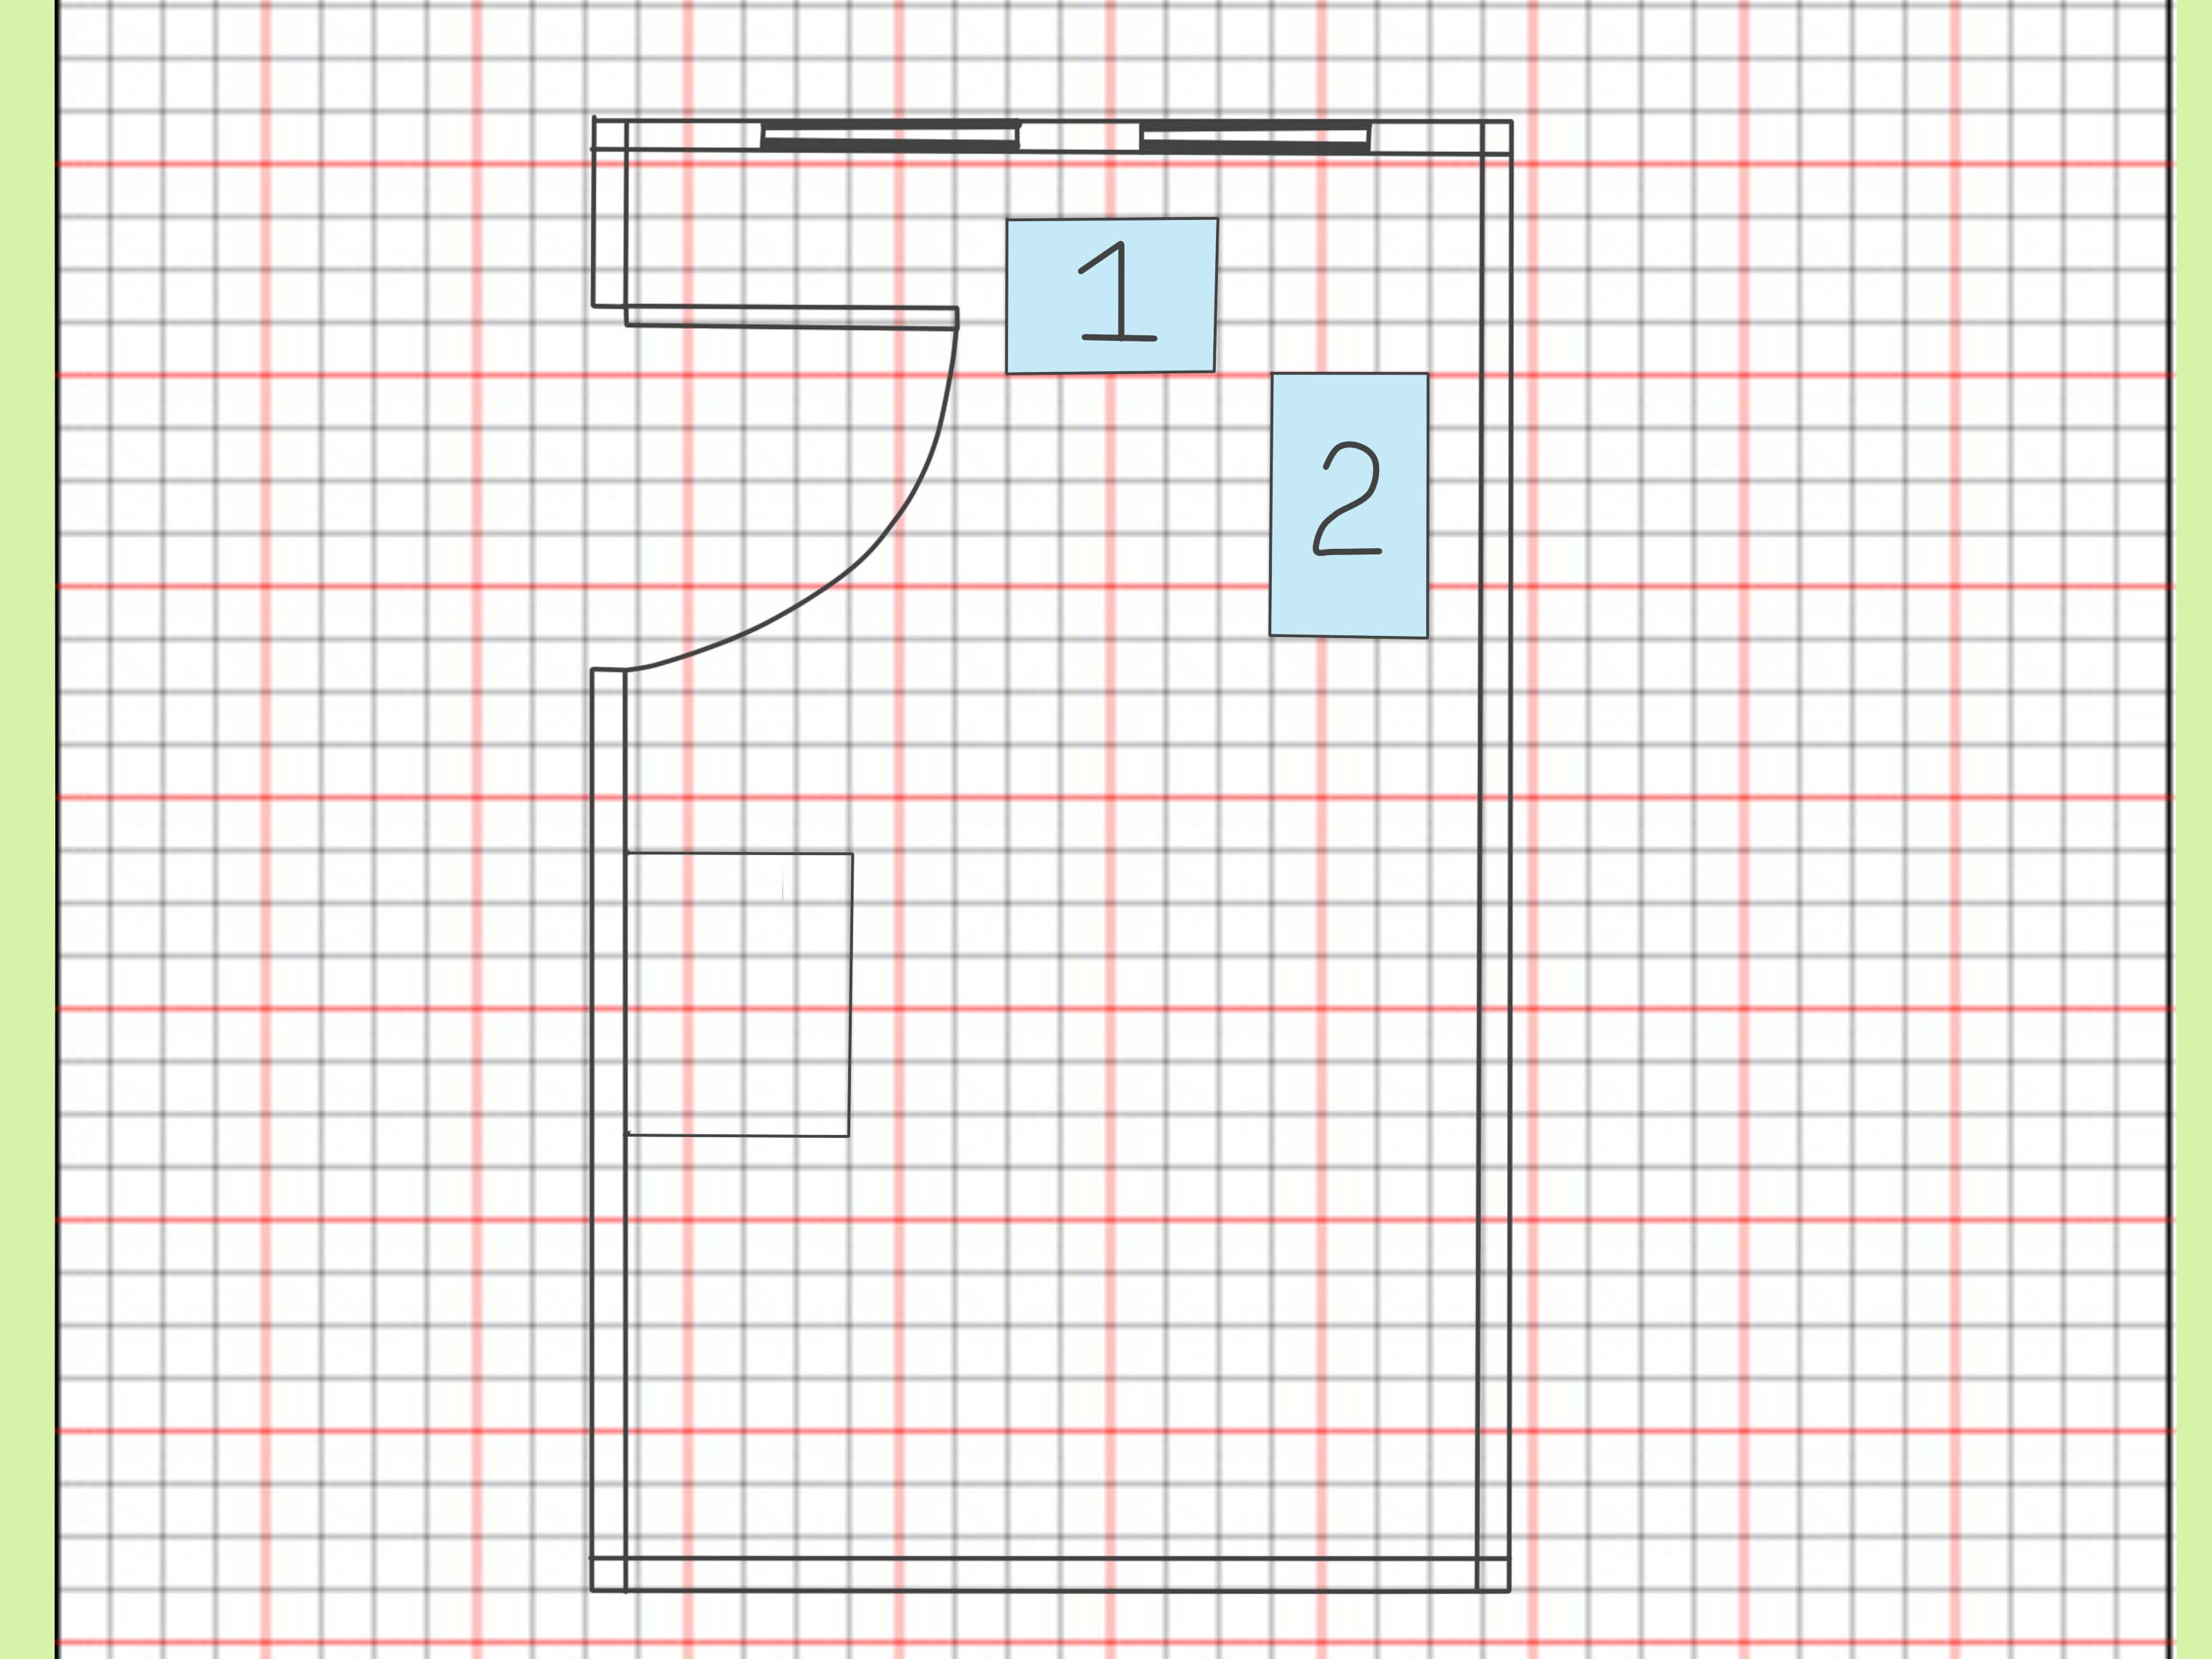 House Drawing Template at GetDrawings.com | Free for personal use ...